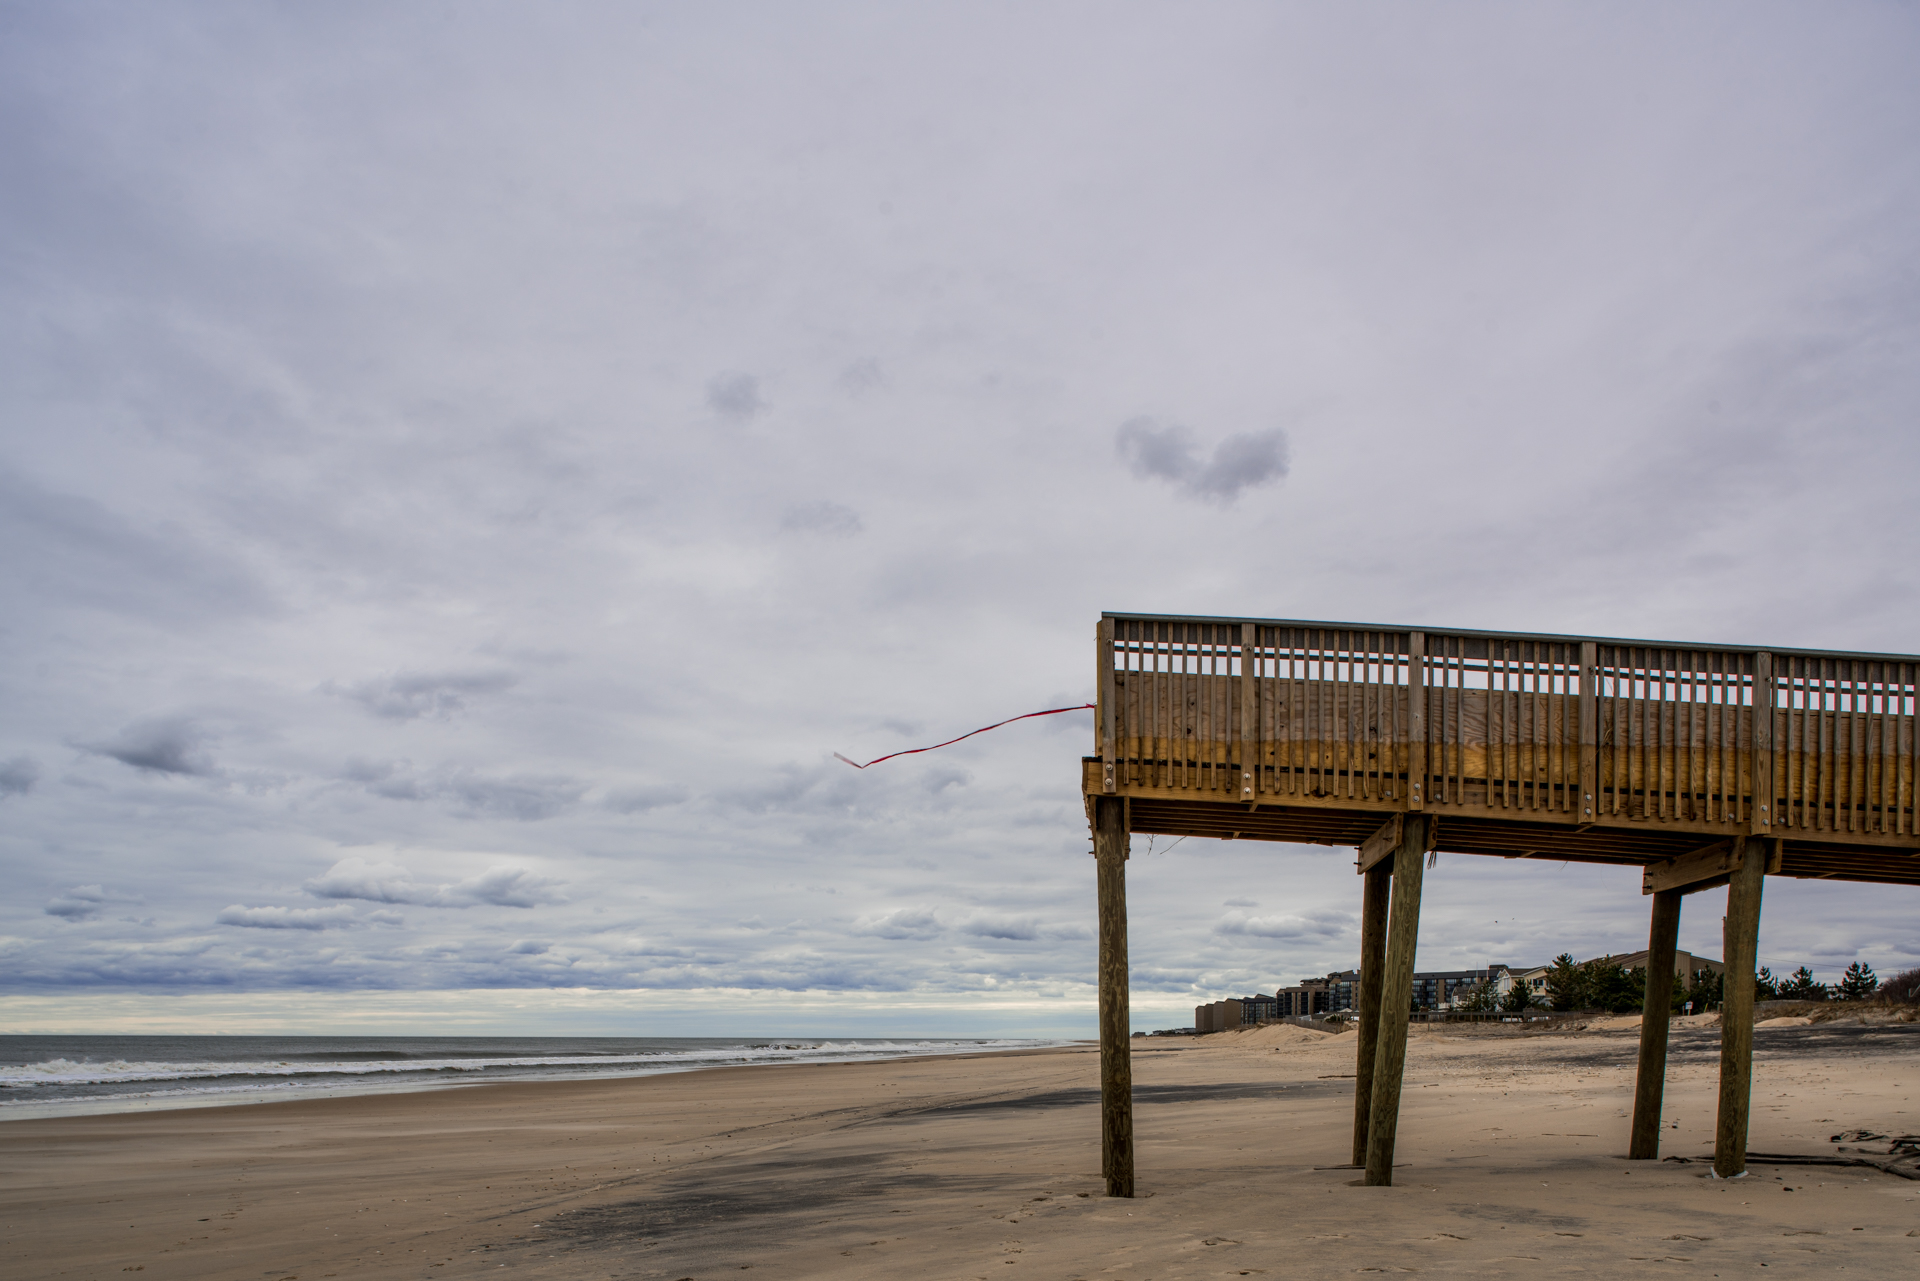 A protective dune in Bethany Beach, Delaware, was washed away in several winter storms in 2016, leaving the boardwalk that carried beach-goers over the dune in the air. The dune near downtown Bethany Beach was replaced by Memorial Day.